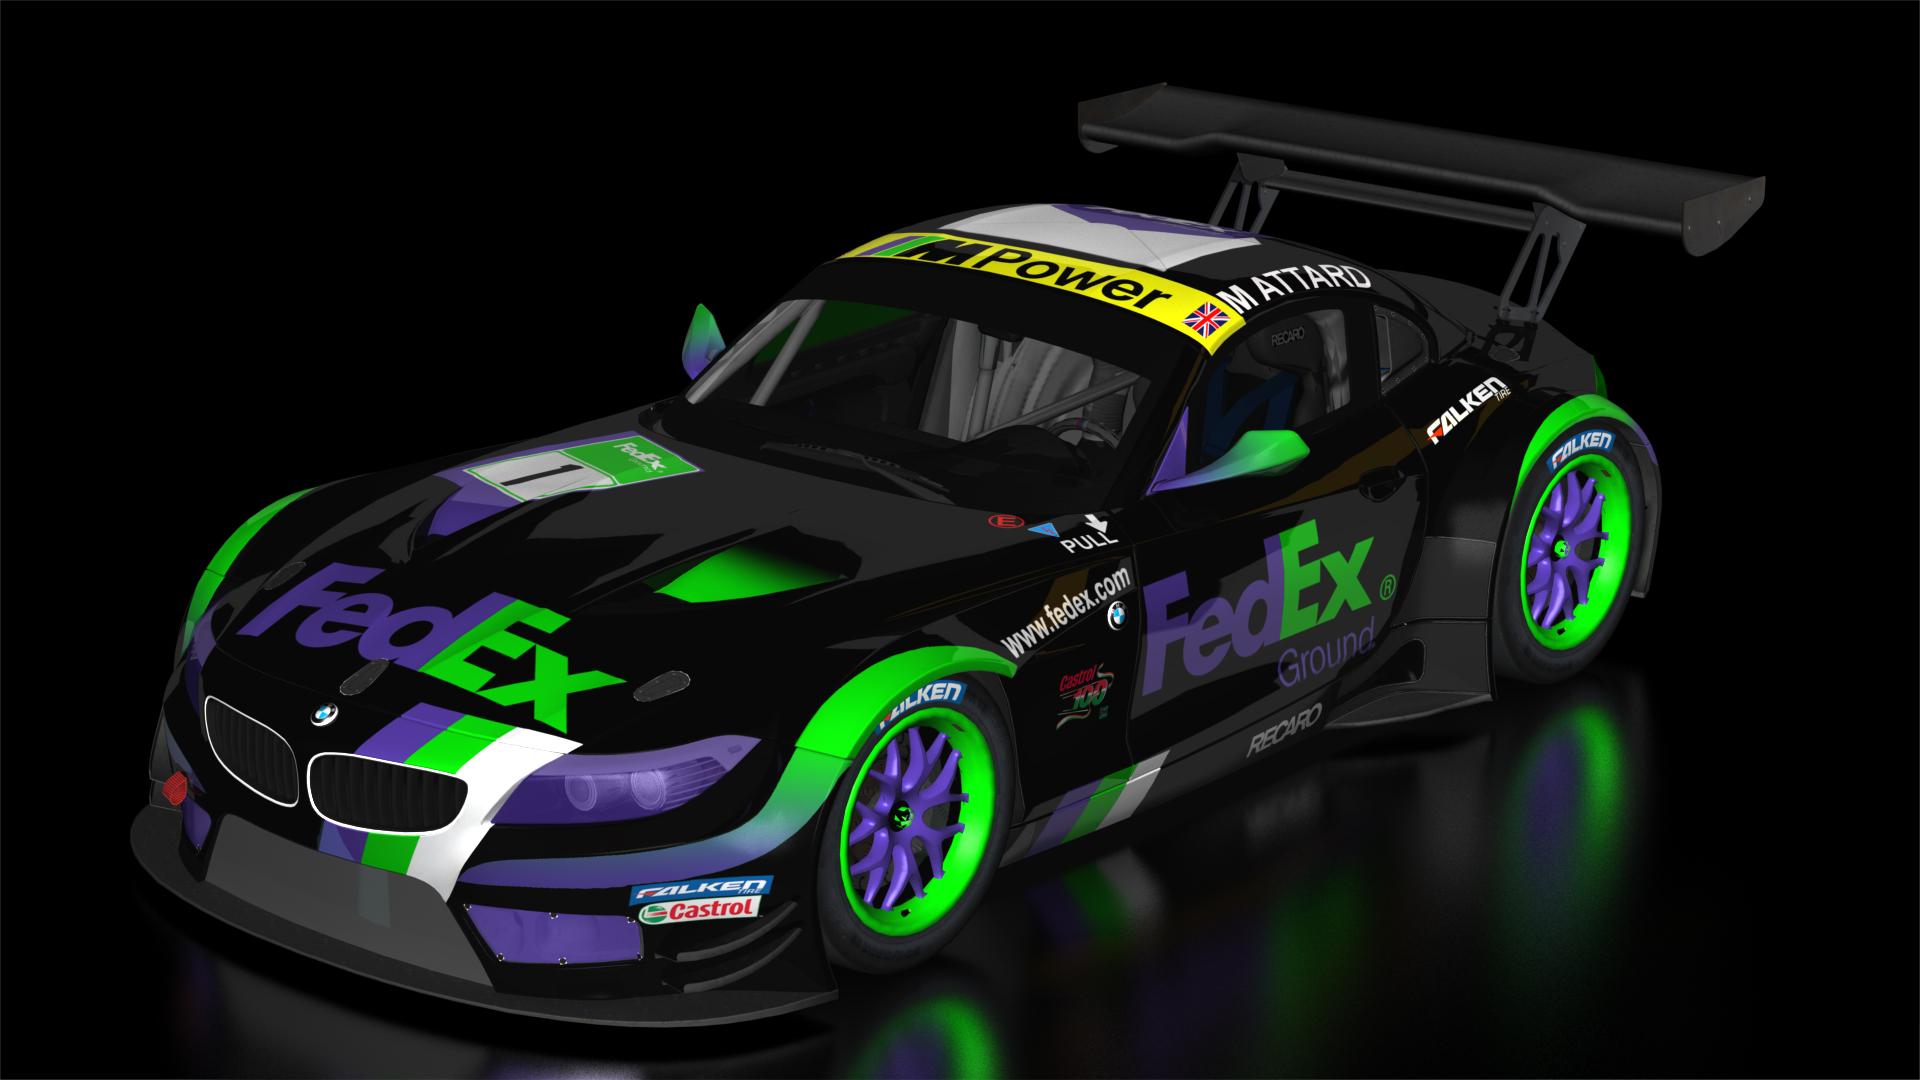 Bmw Gt3 Fedex Racing Team Livery Racedepartment